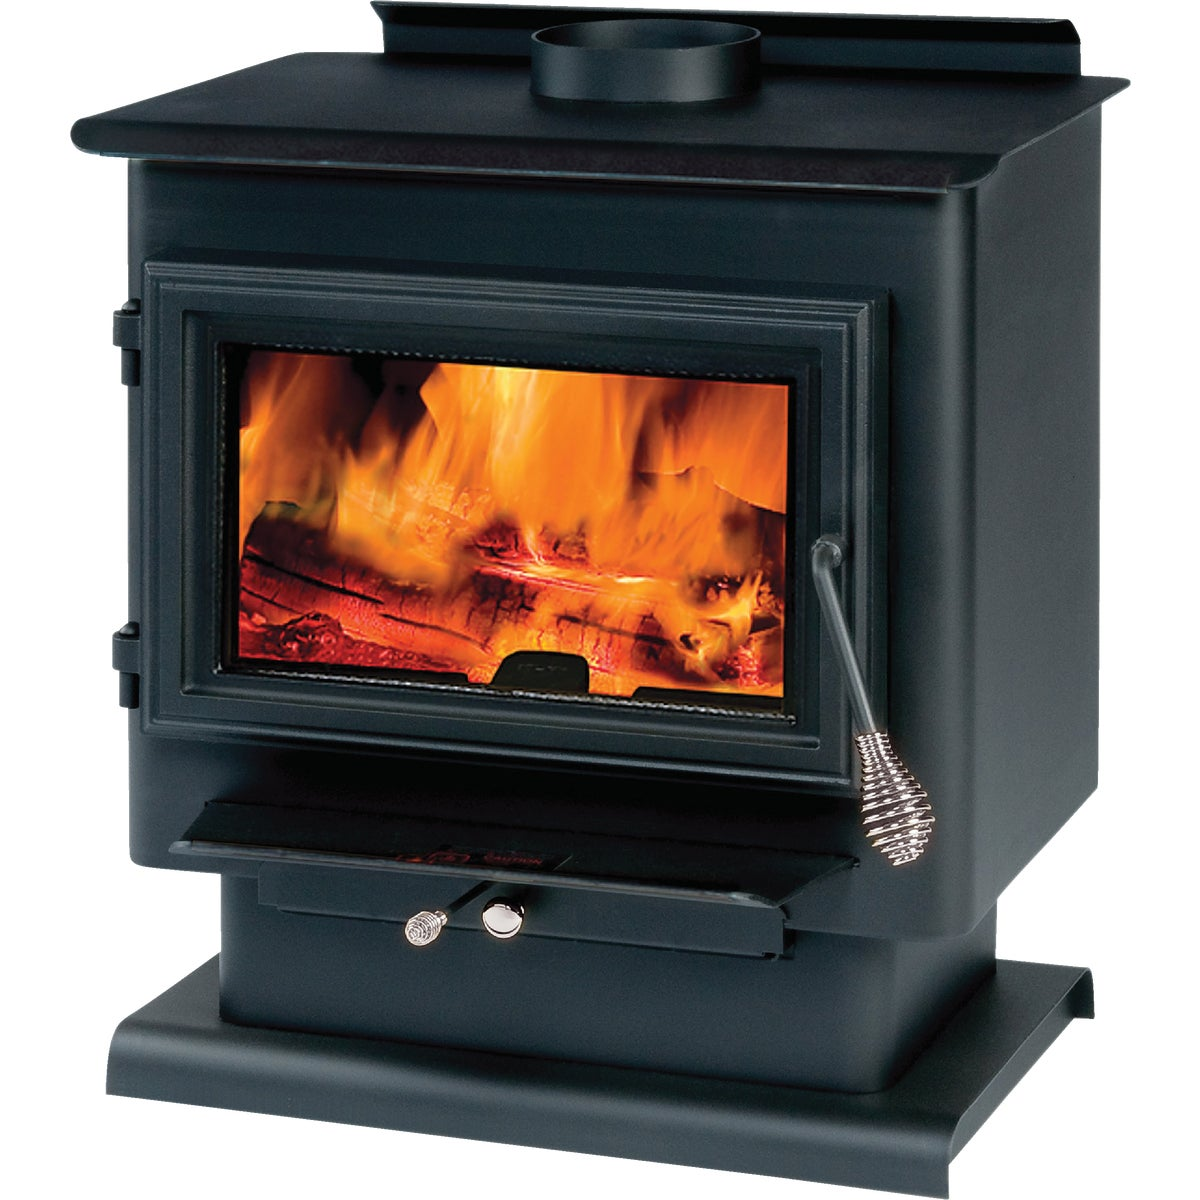 1800 SQ FT WOOD STOVE - 50-SNC13 by Englands Stove Work